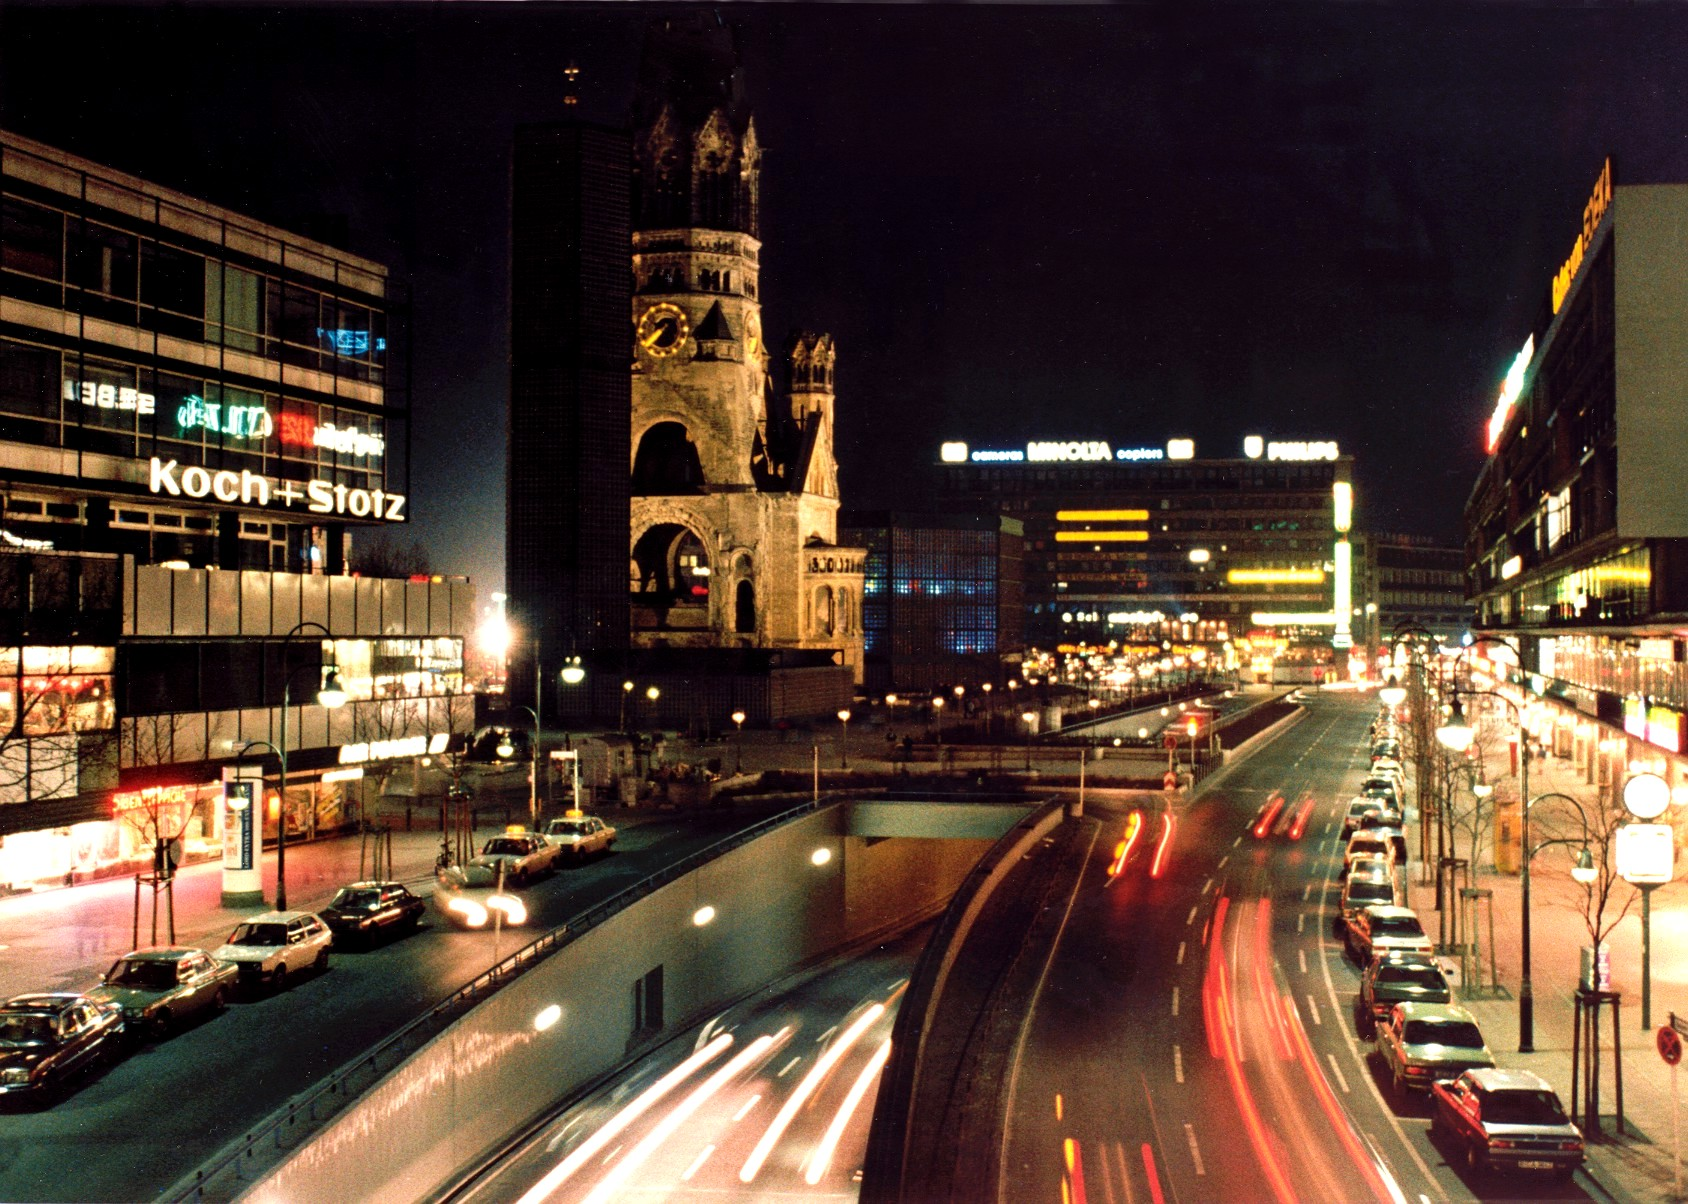 The city of Berlin by night